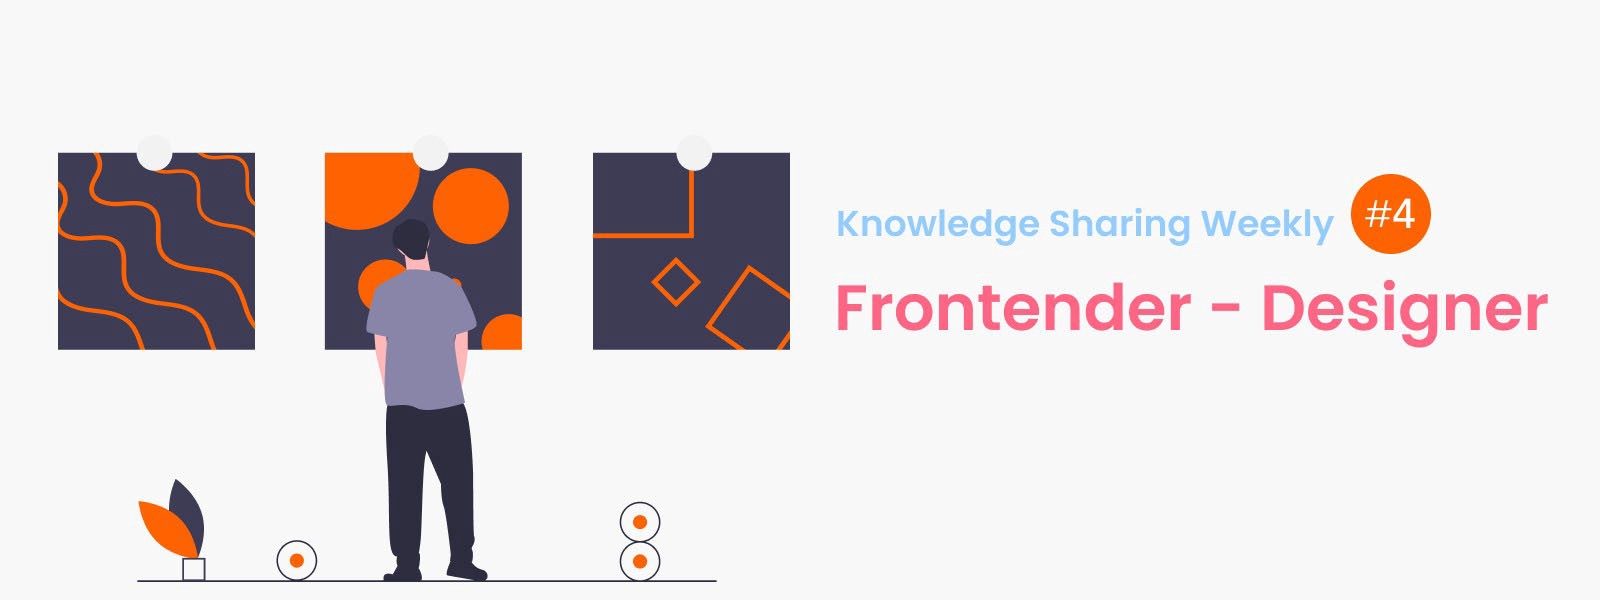 Frontend-Design Knowledge Sharing #4 - YoungInnovations' Blog